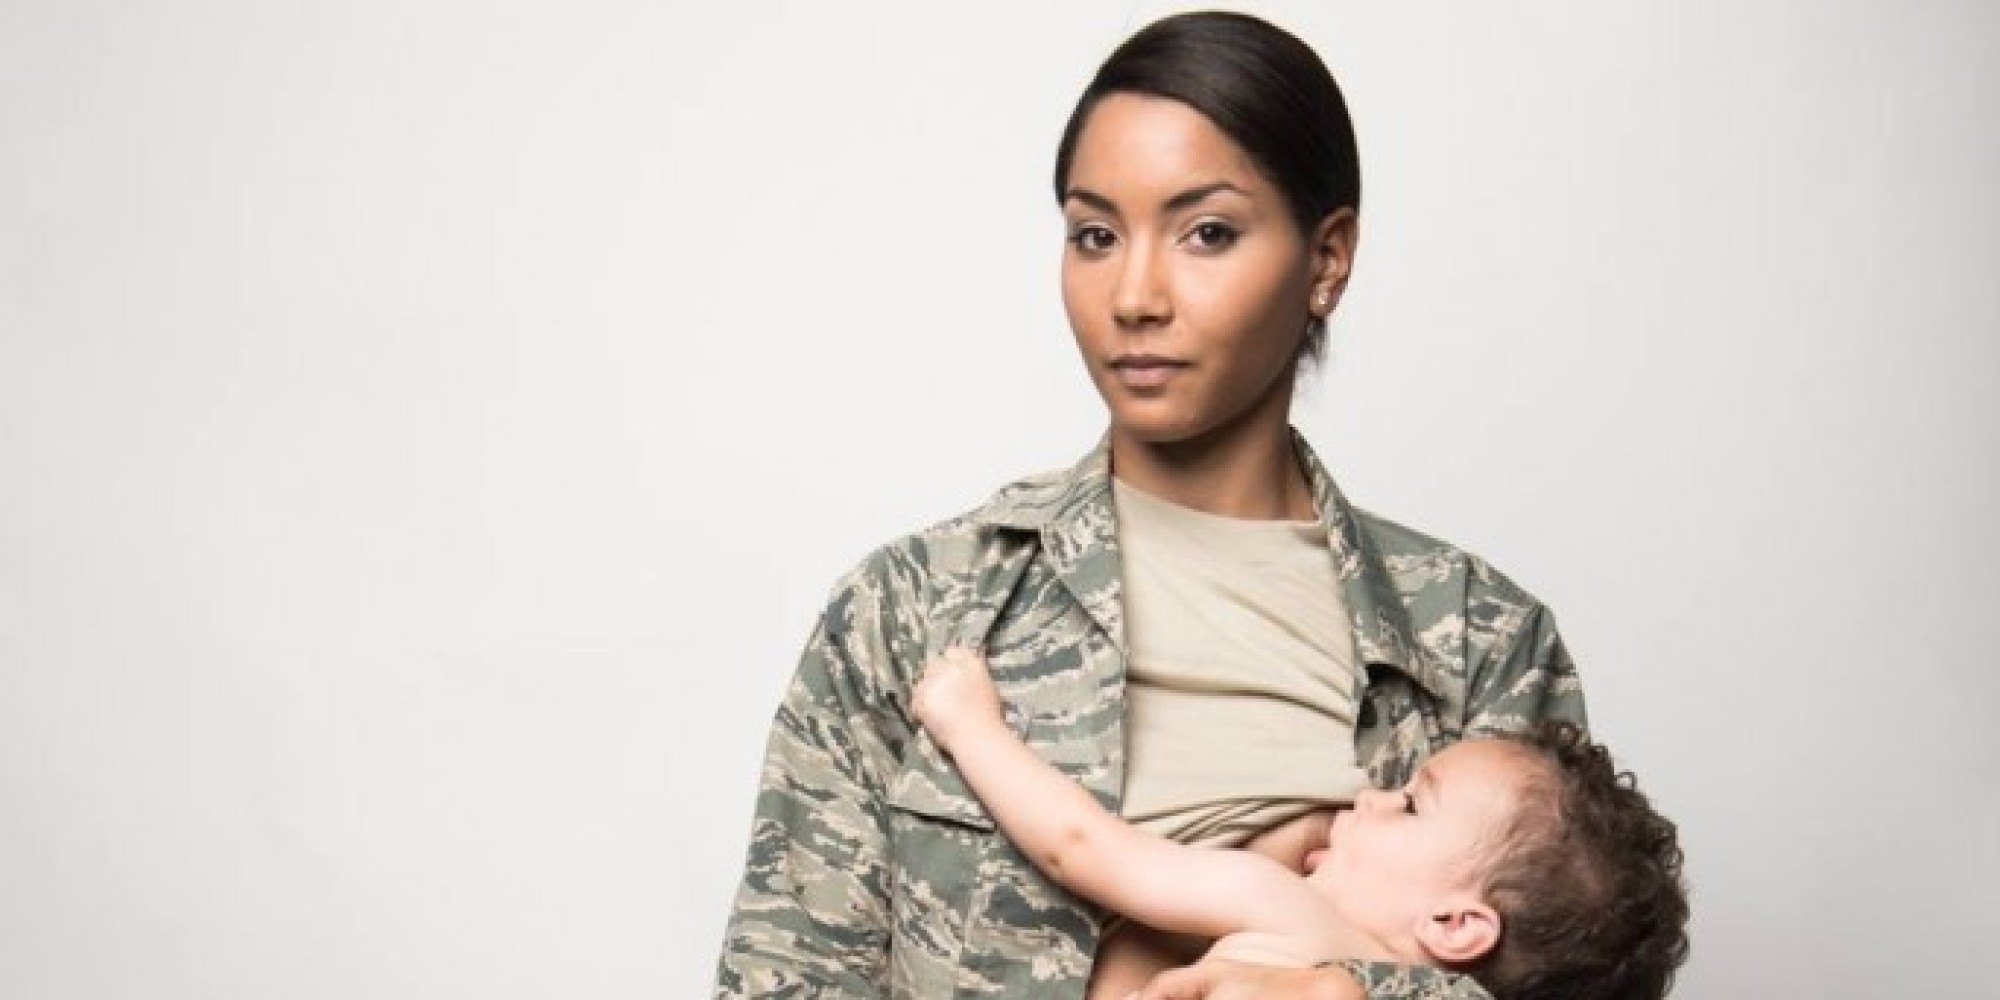 a look at the challenges faced by the working mom Finding quality child care may be one of the most difficult tasks you will face find someone you trust to take care of them while you are working.